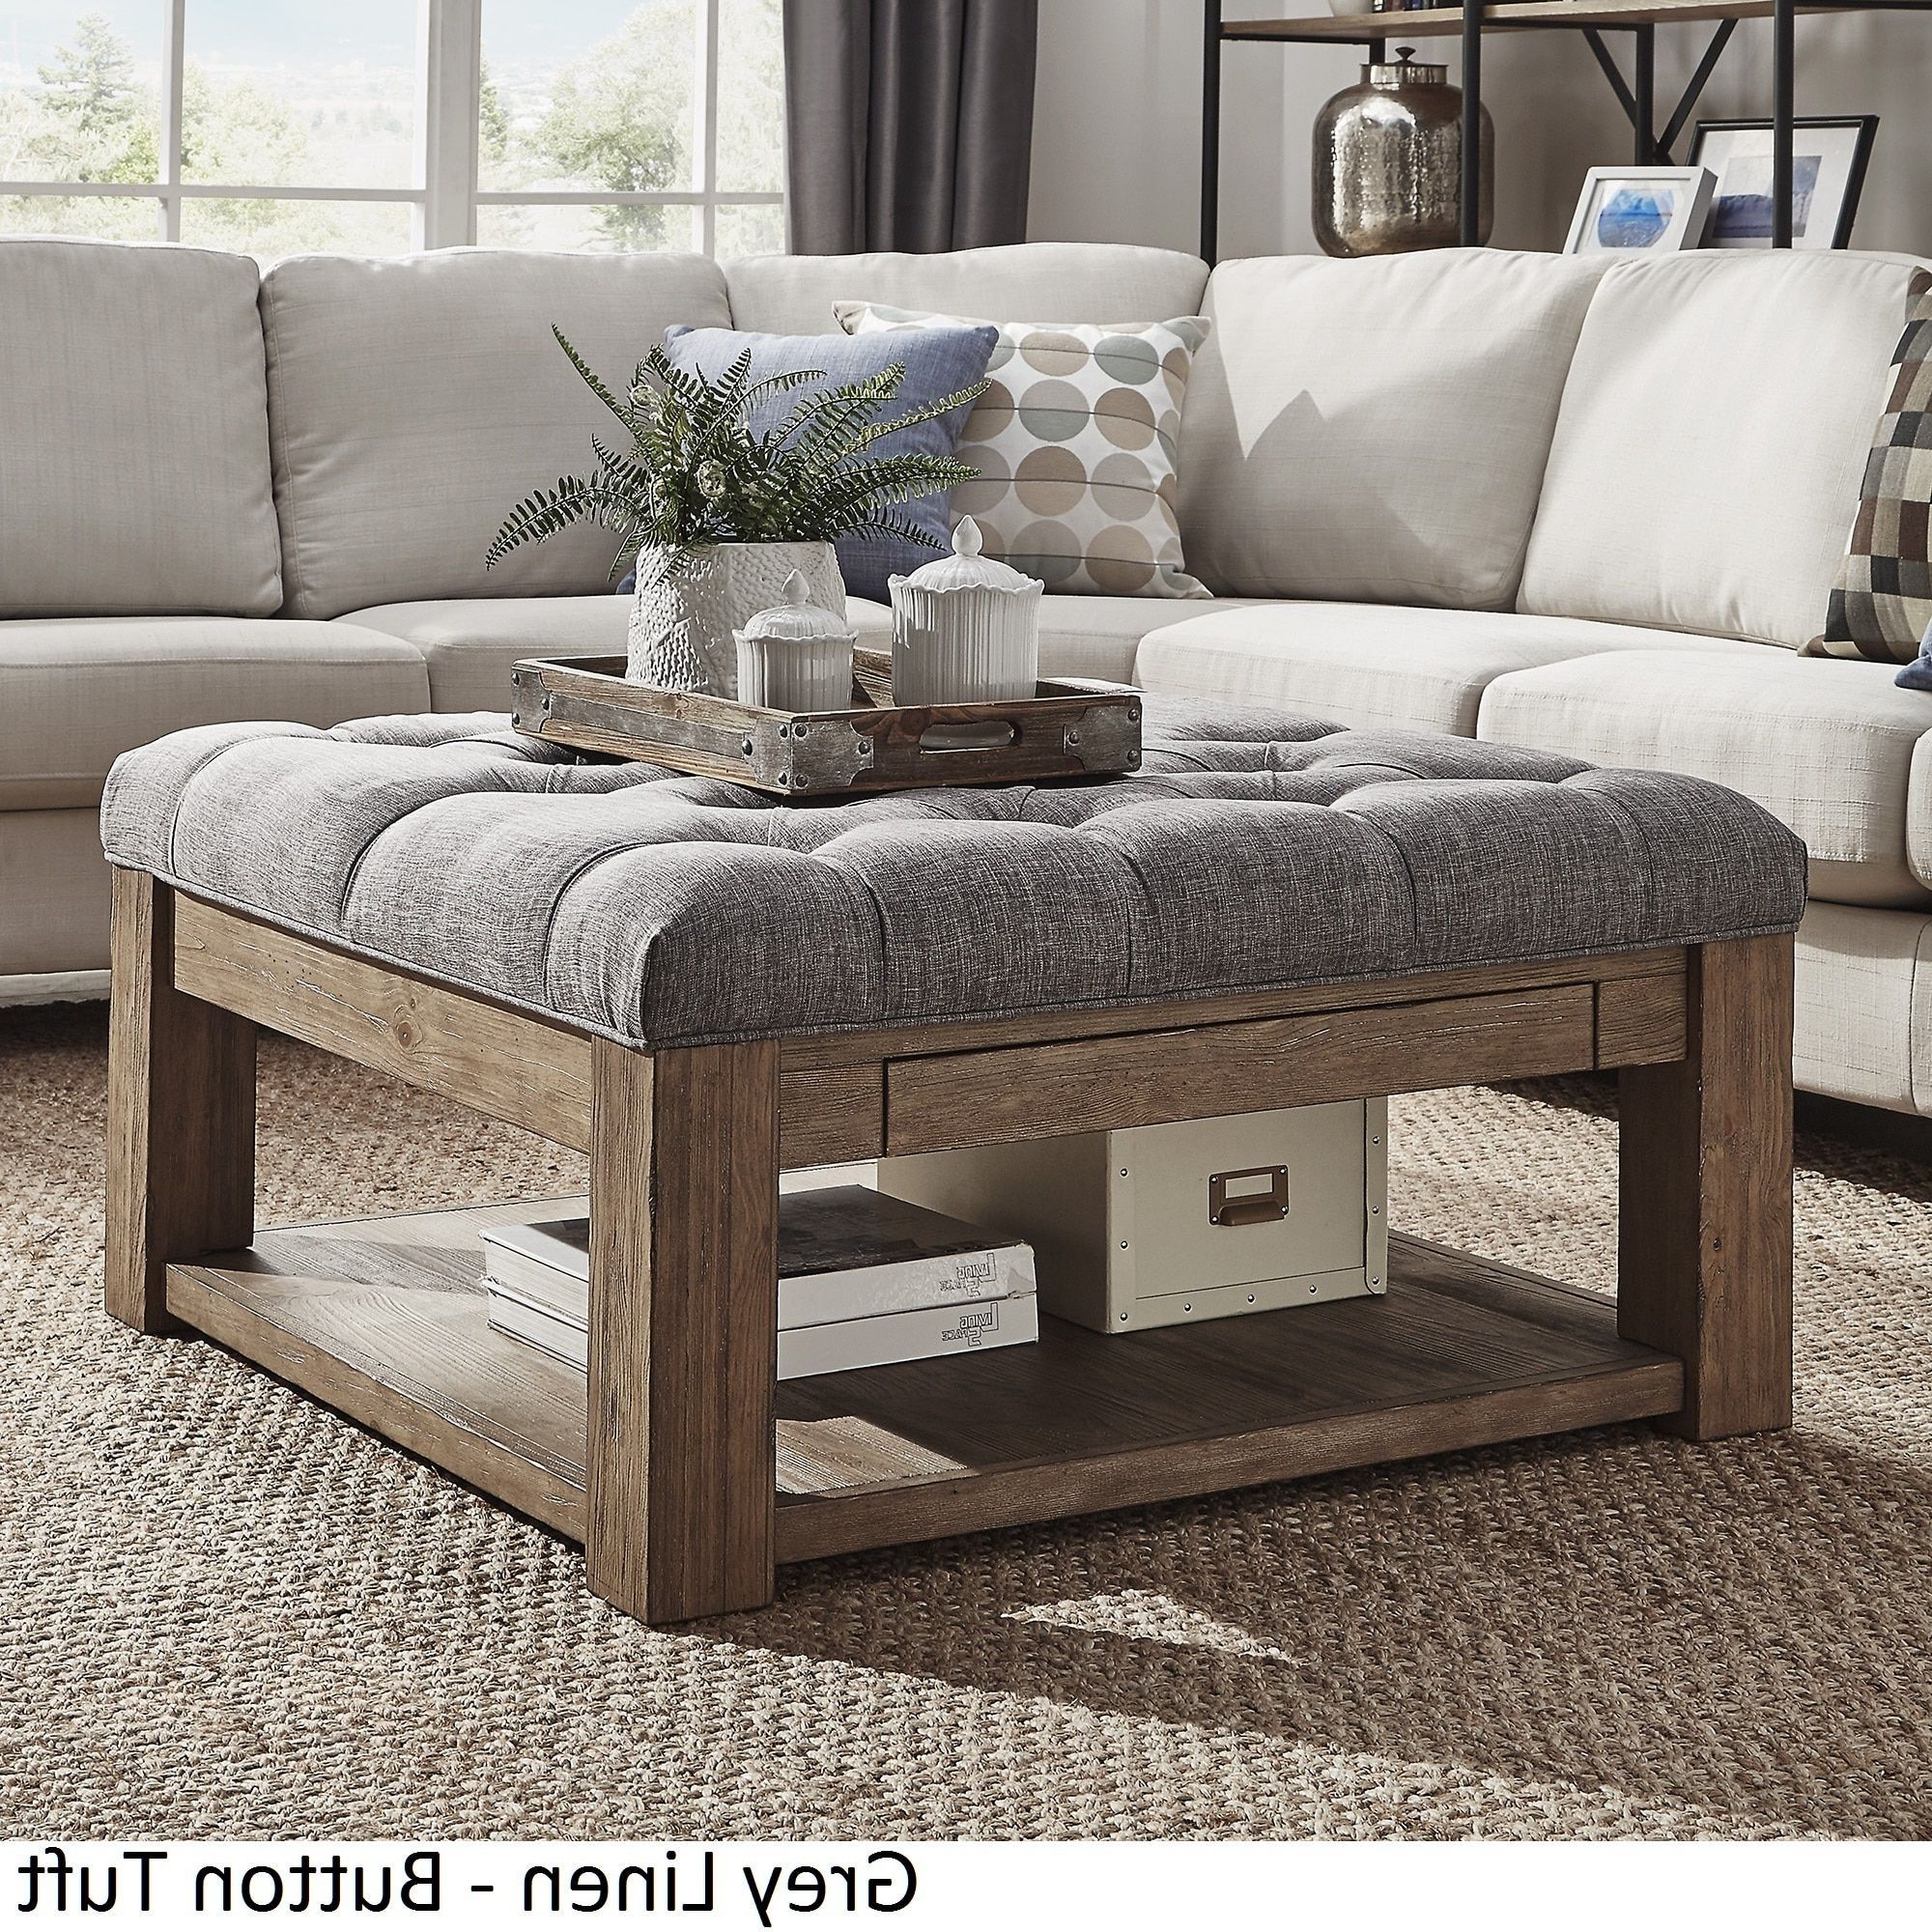 Lennon Pine Square Storage Ottoman Coffee Tableinspire Q In Well Known Lennon Pine Square Storage Ottoman Coffee Tables (View 11 of 20)